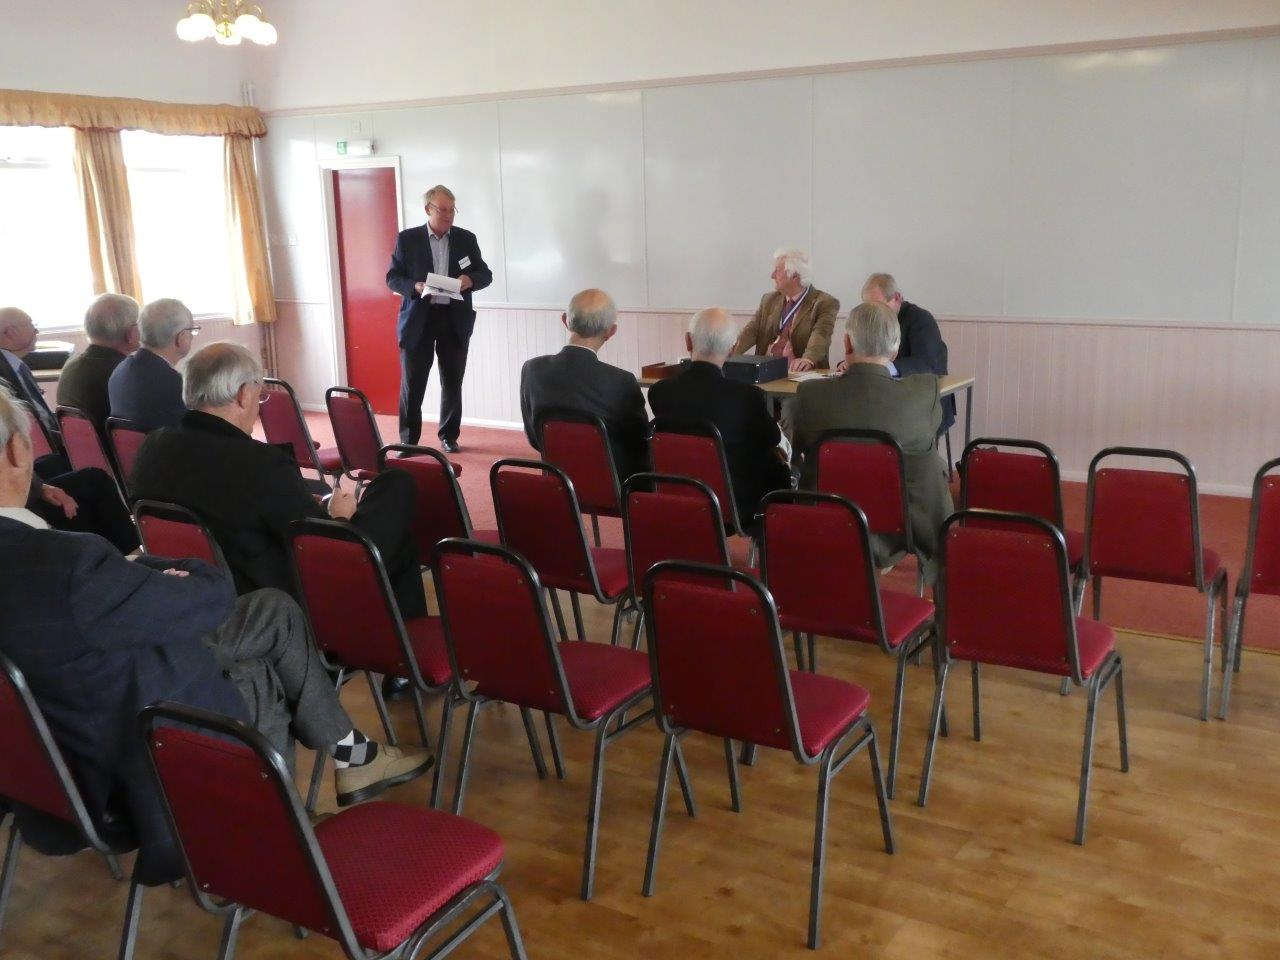 John Colver reviewing the past year's programme